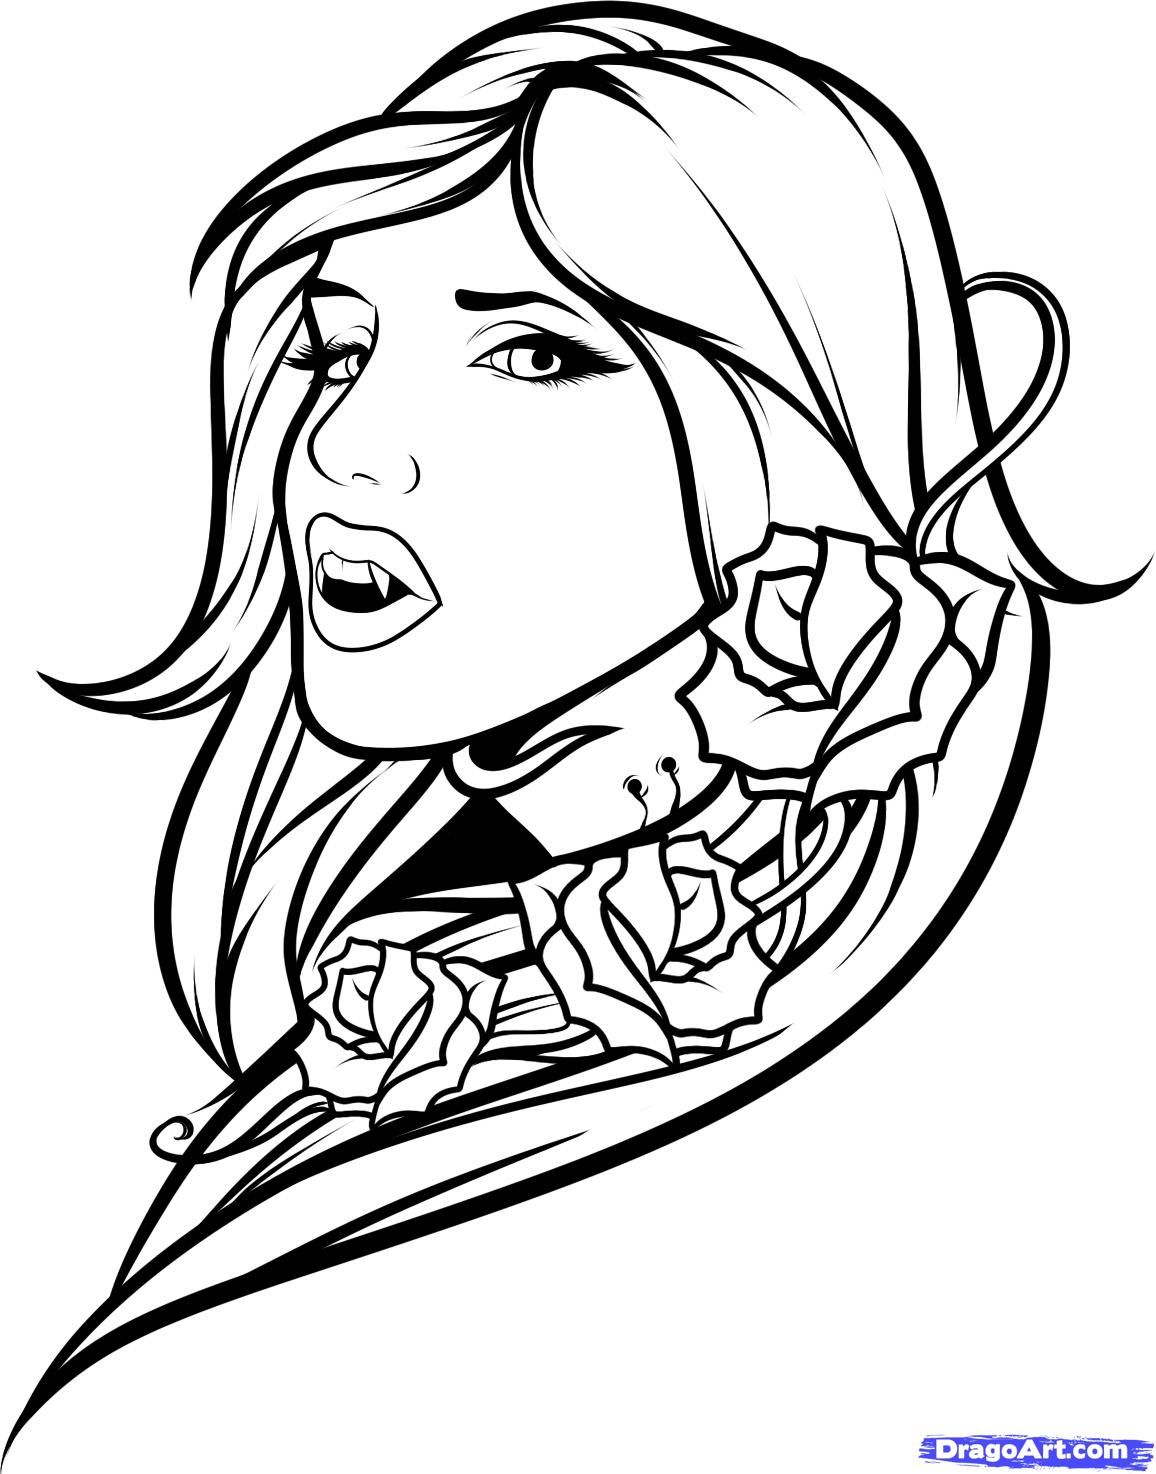 1156x1474 Vampire Girlvm Colouring Pages Coloring Pages